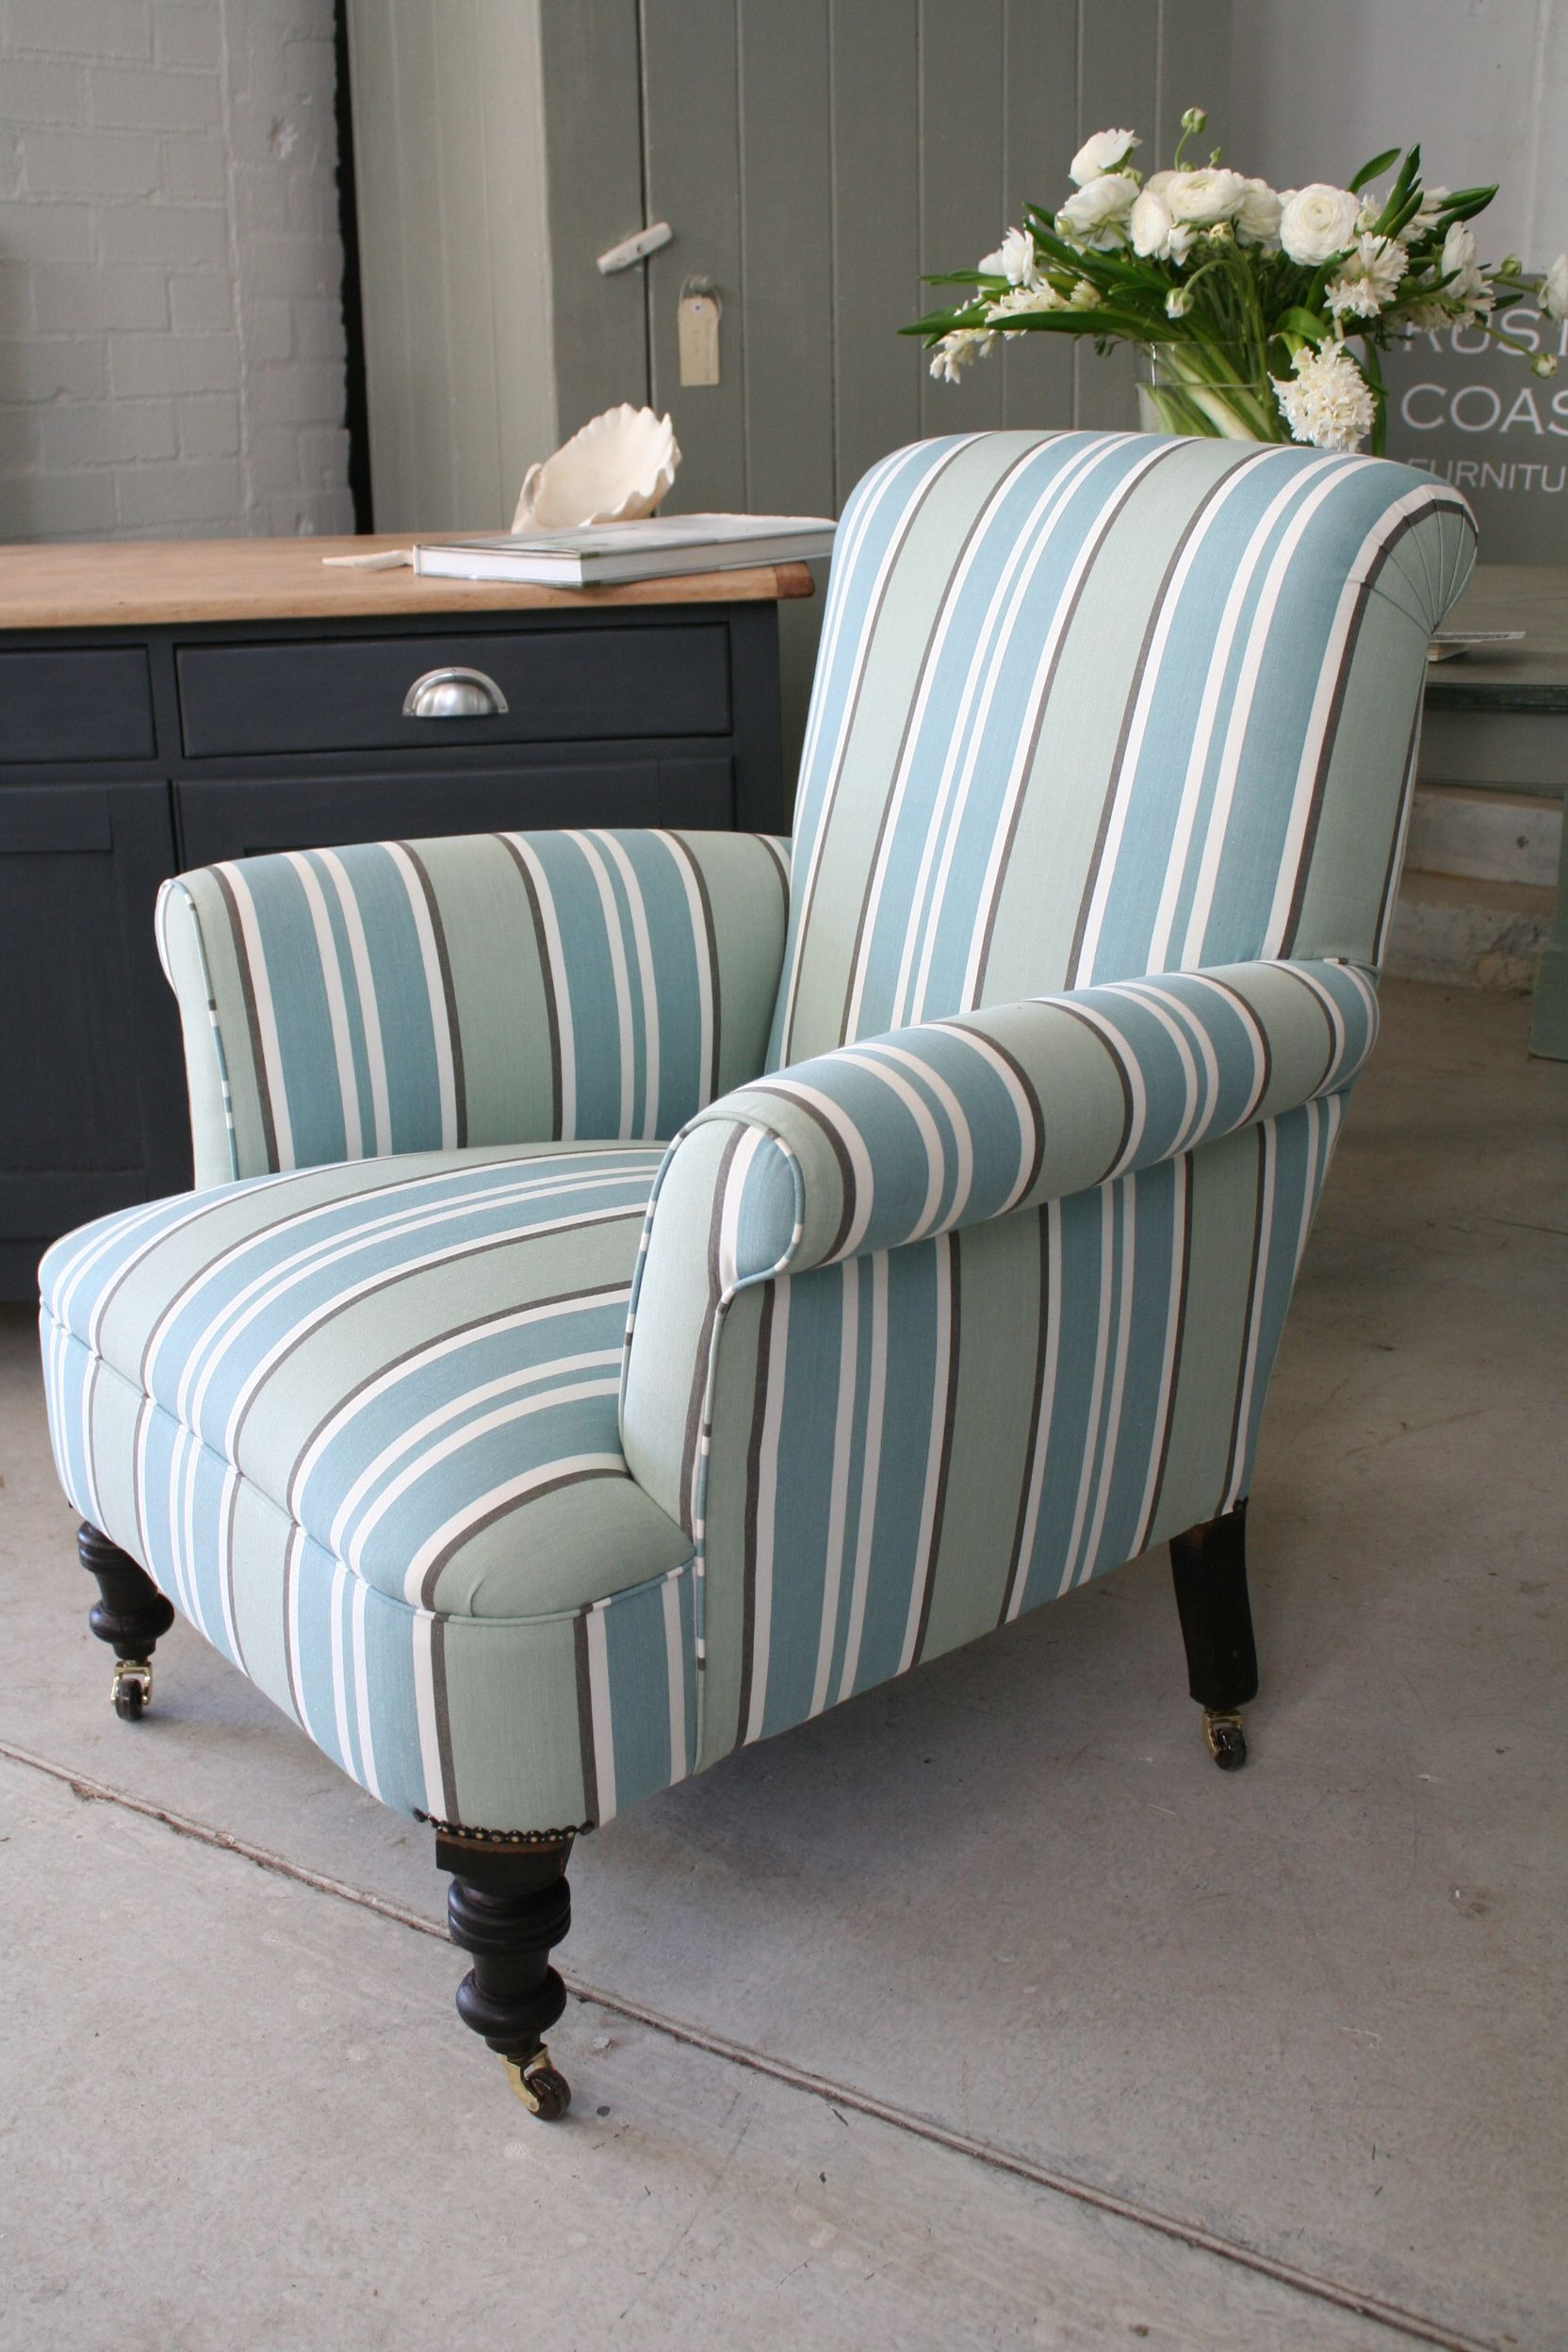 This large, comfortable Edwardian armchair has been